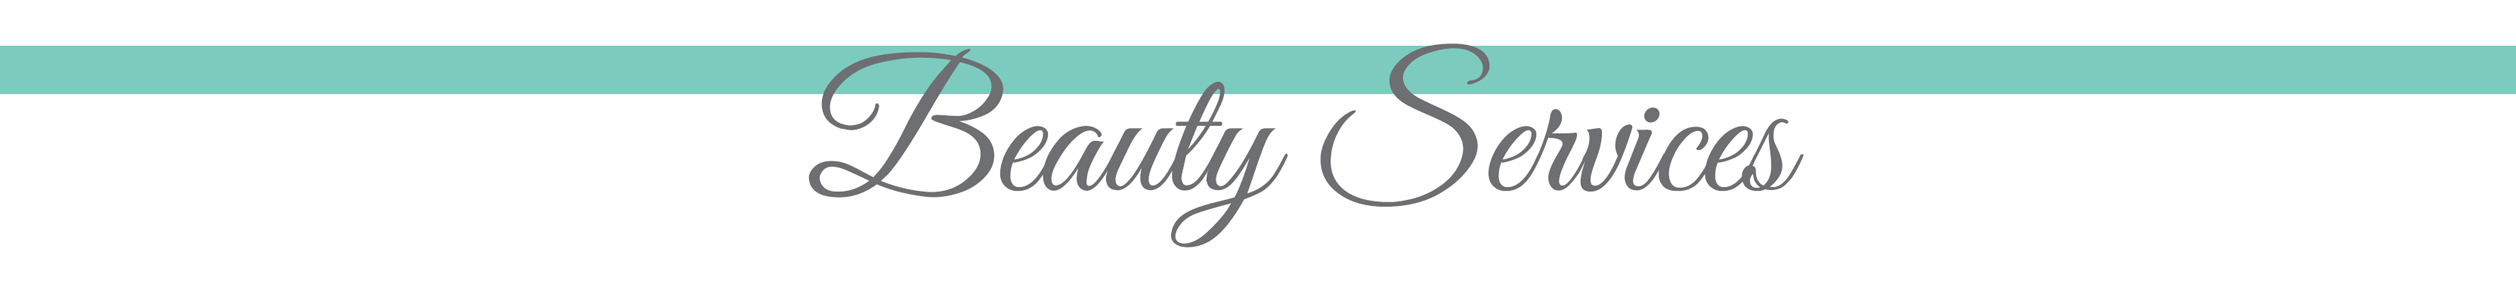 8. BEAUTY SERVICES